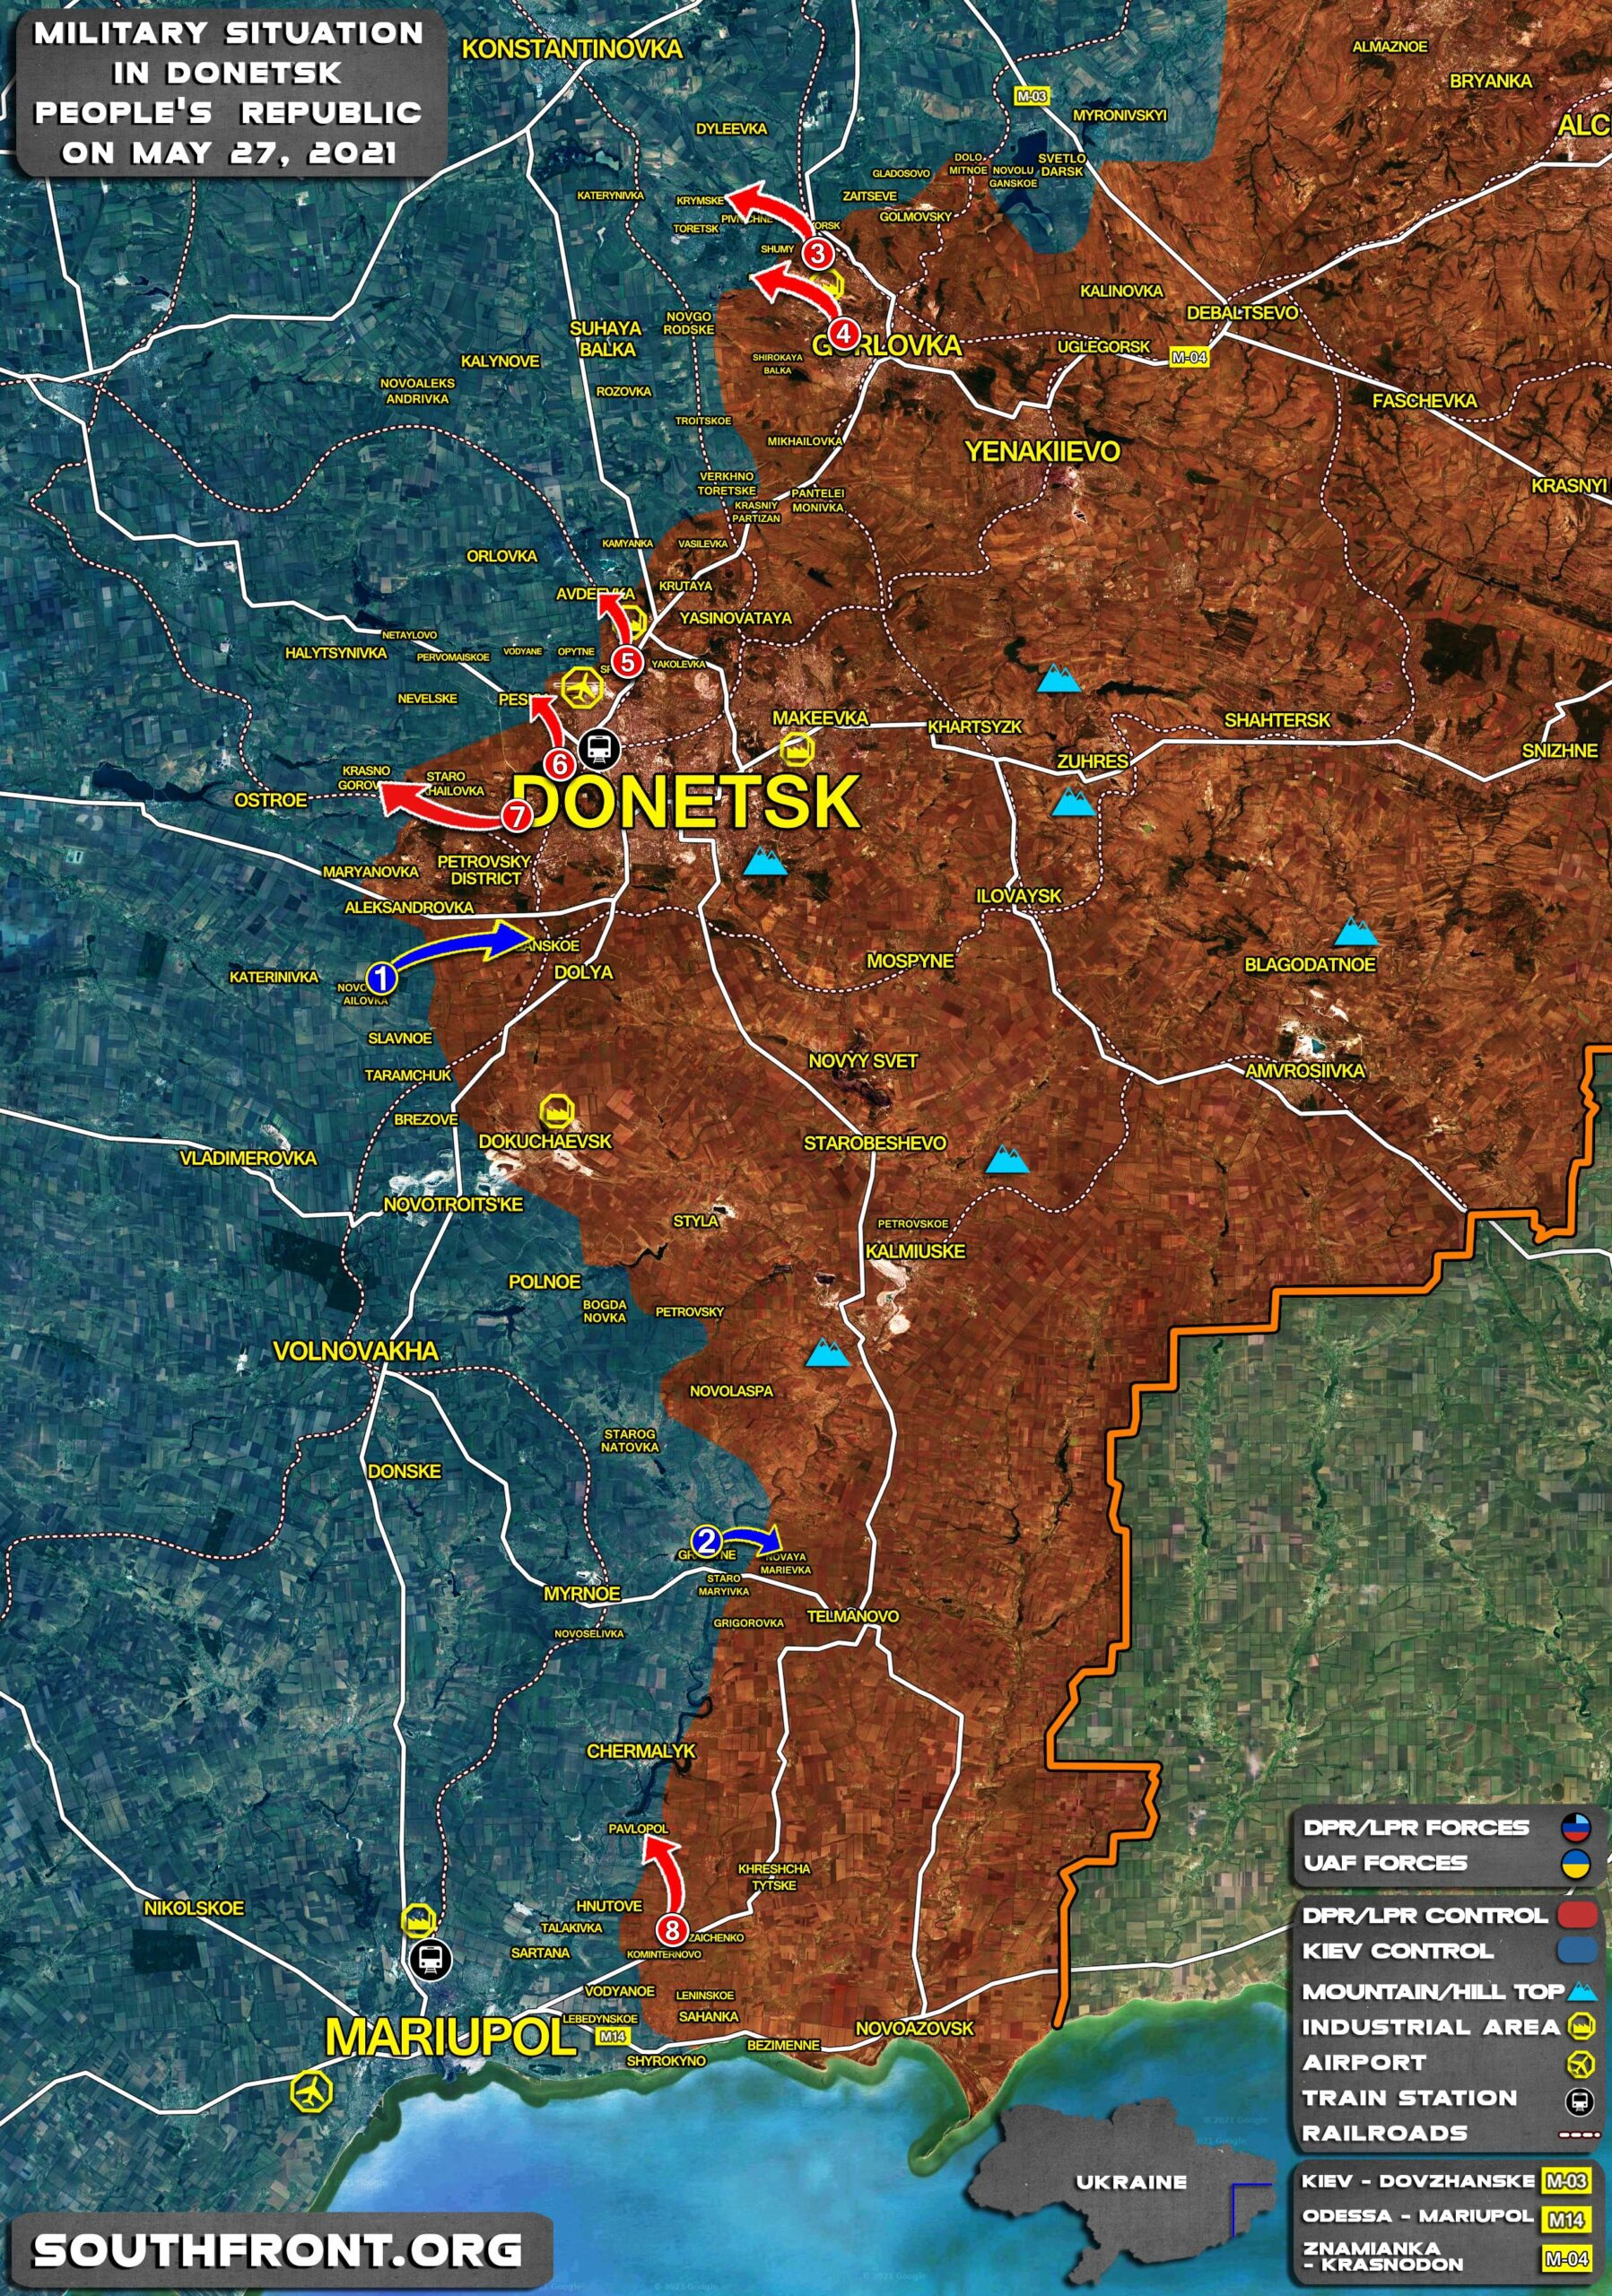 Military Situation In Donetsk People's Republic On May 27, 2021 (Map Update)